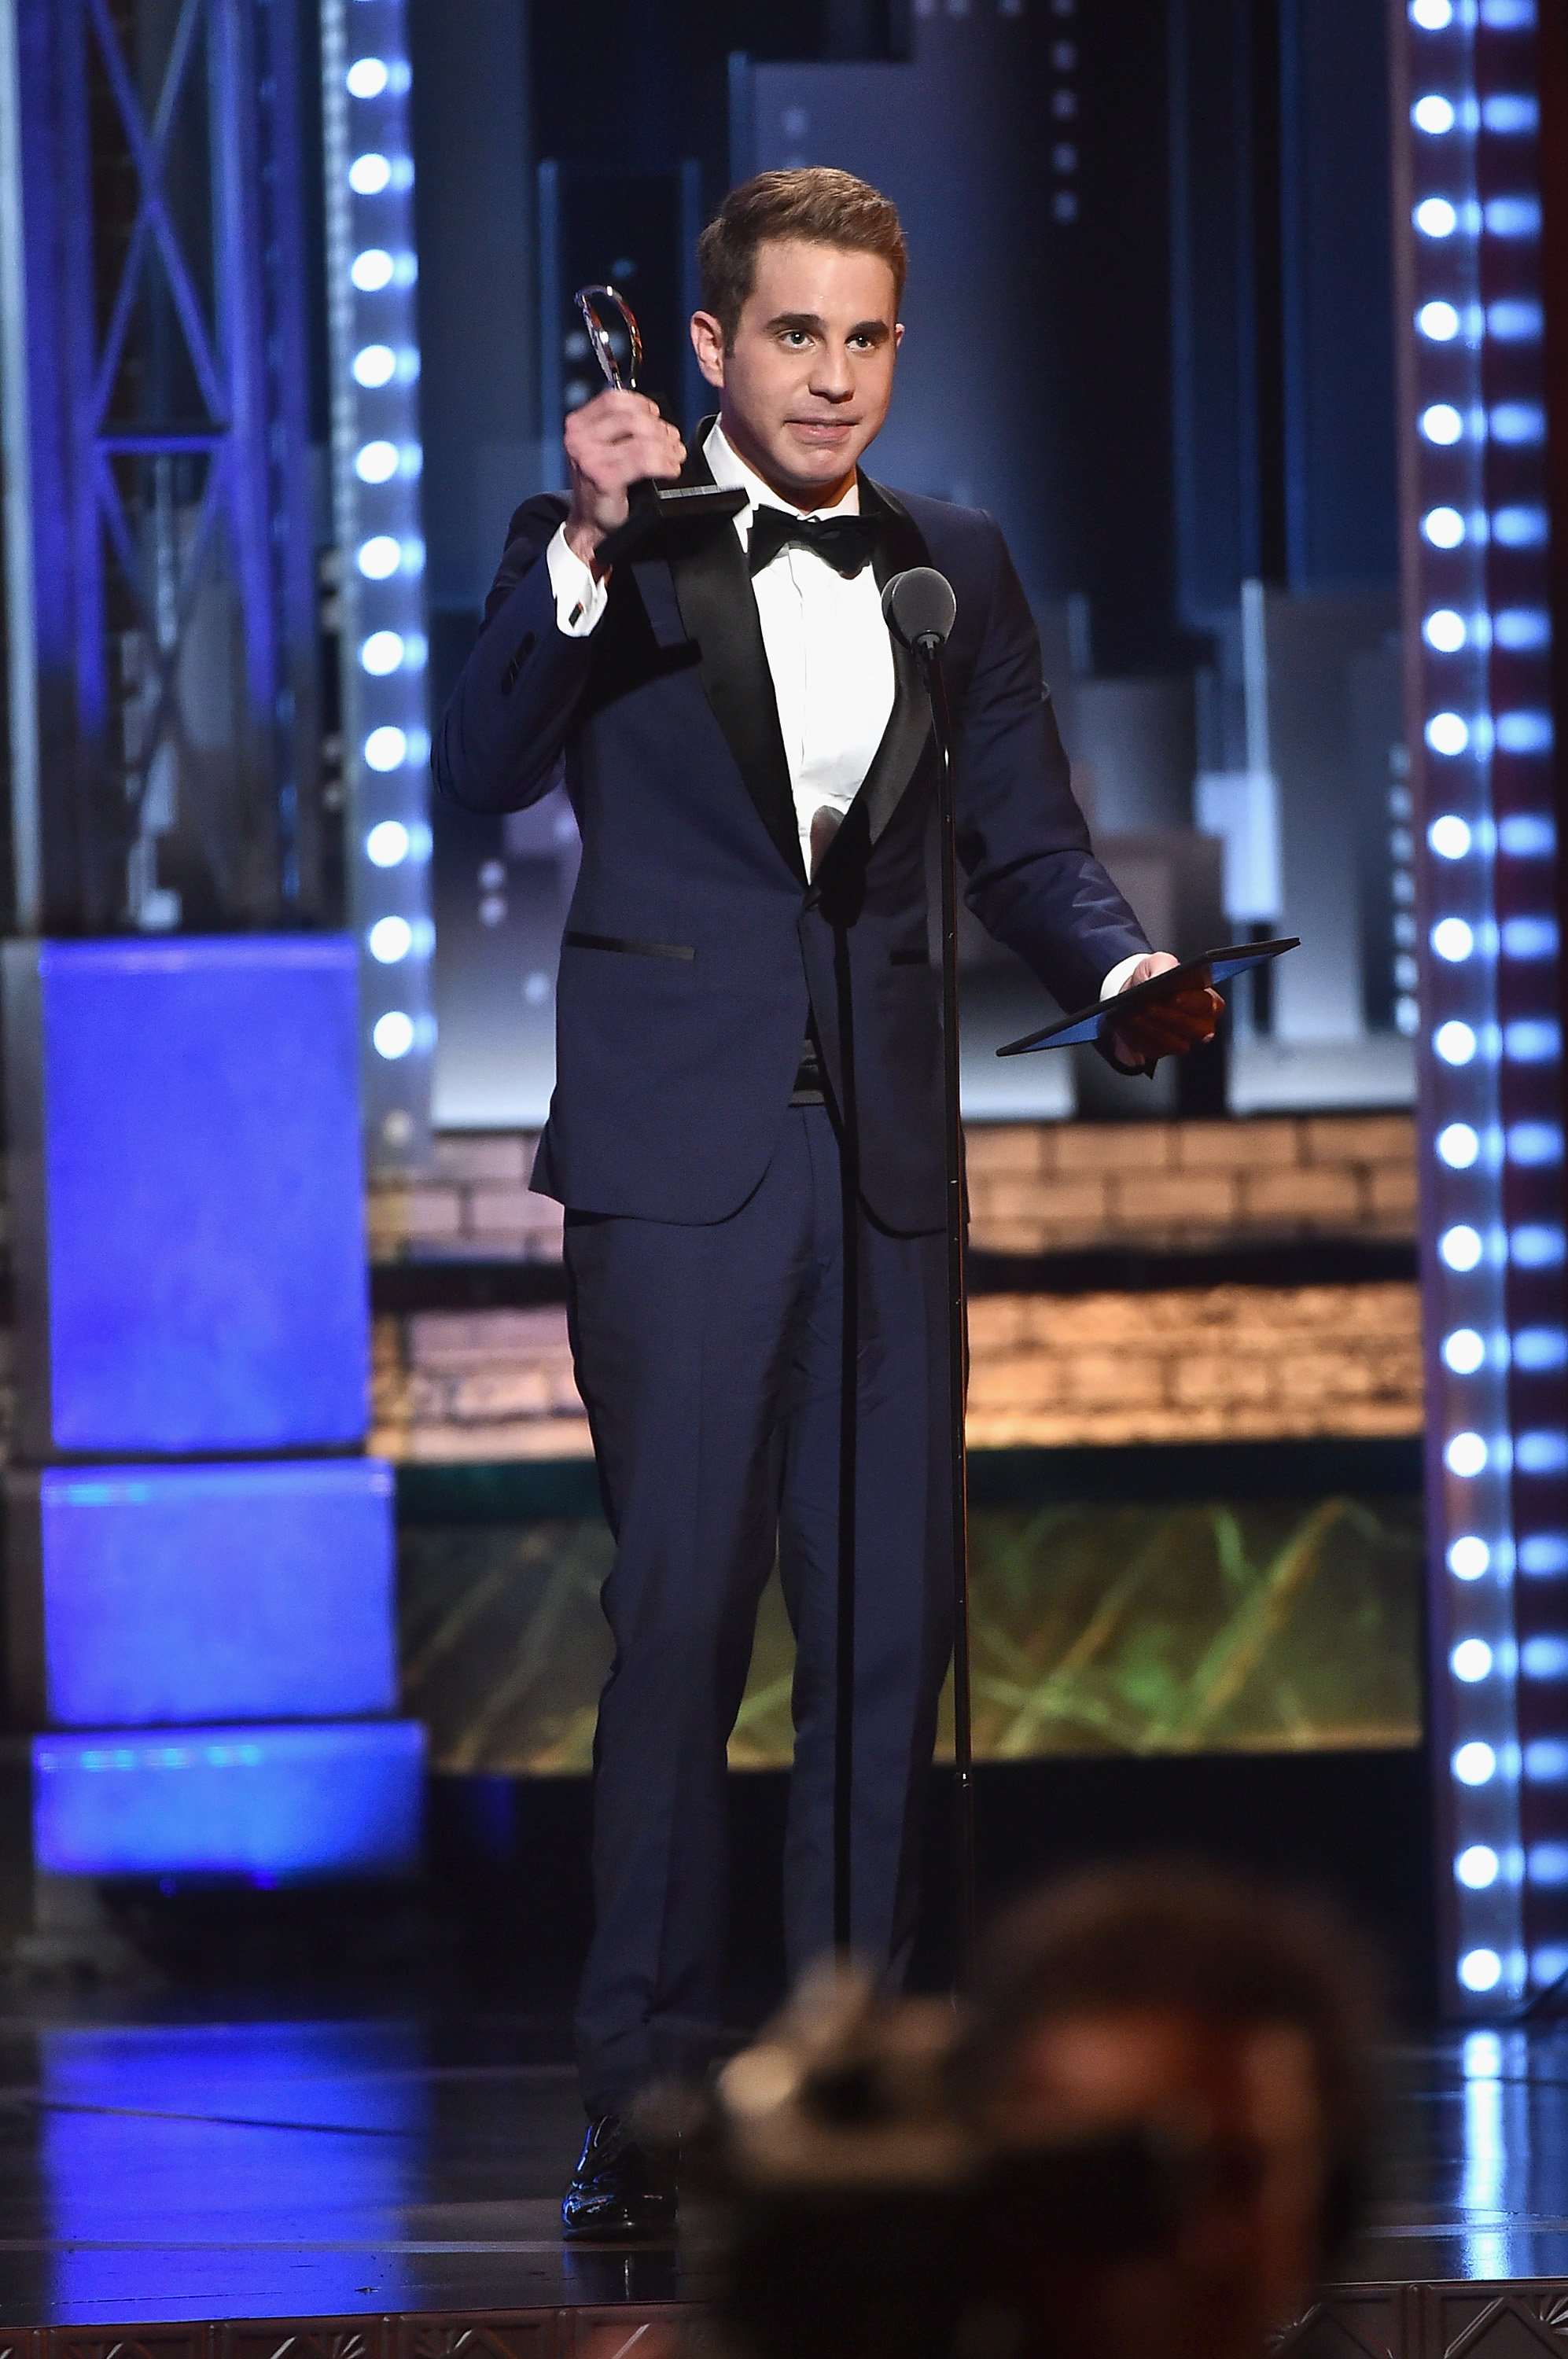 Ben Platt accepts the award for Best Performance by an Actor in a Leading Role in a Musical for 'Dear Evan Hansen' onstage during the 2017 Tony Awards at Radio City Music Hall on June 11, 2017 in New York City